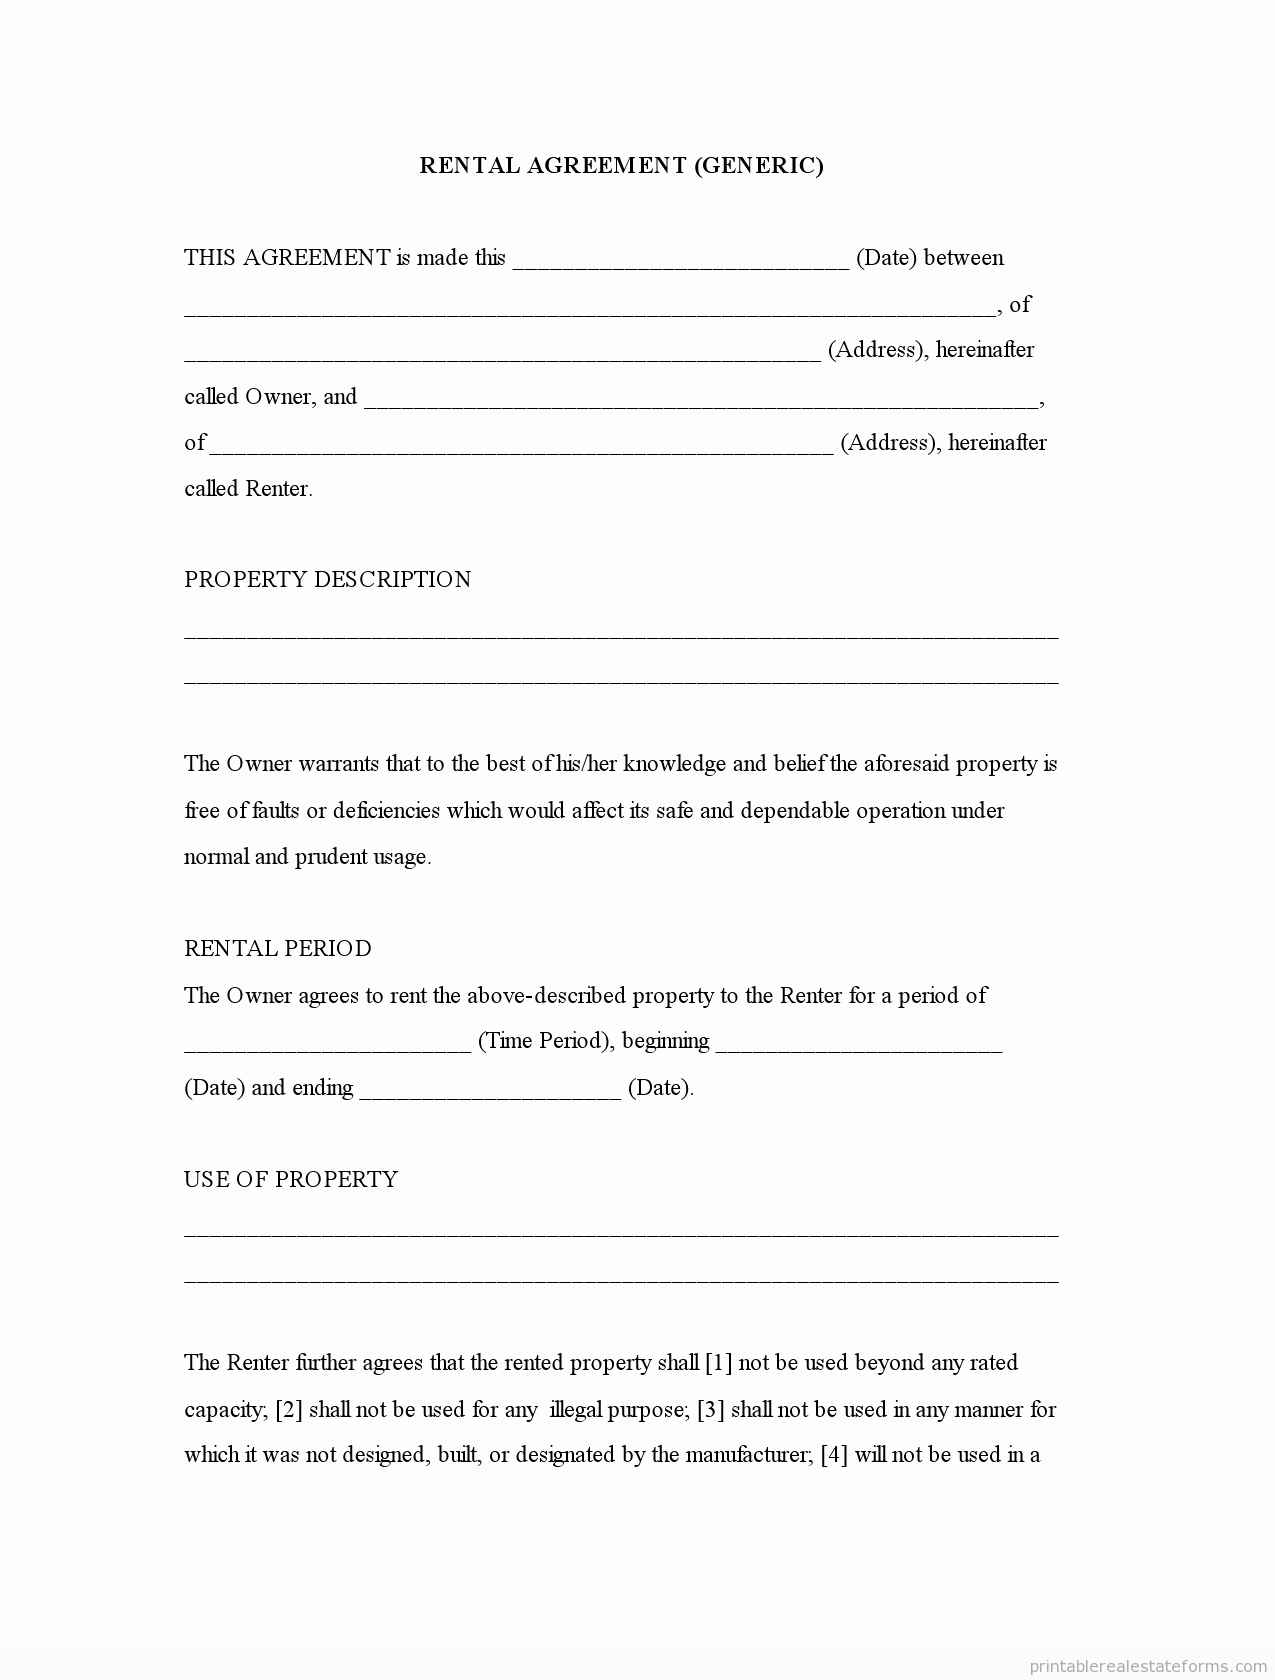 Generic Lease Agreement Pdf Elegant Generic Template Rental Agreement forms Free Printable